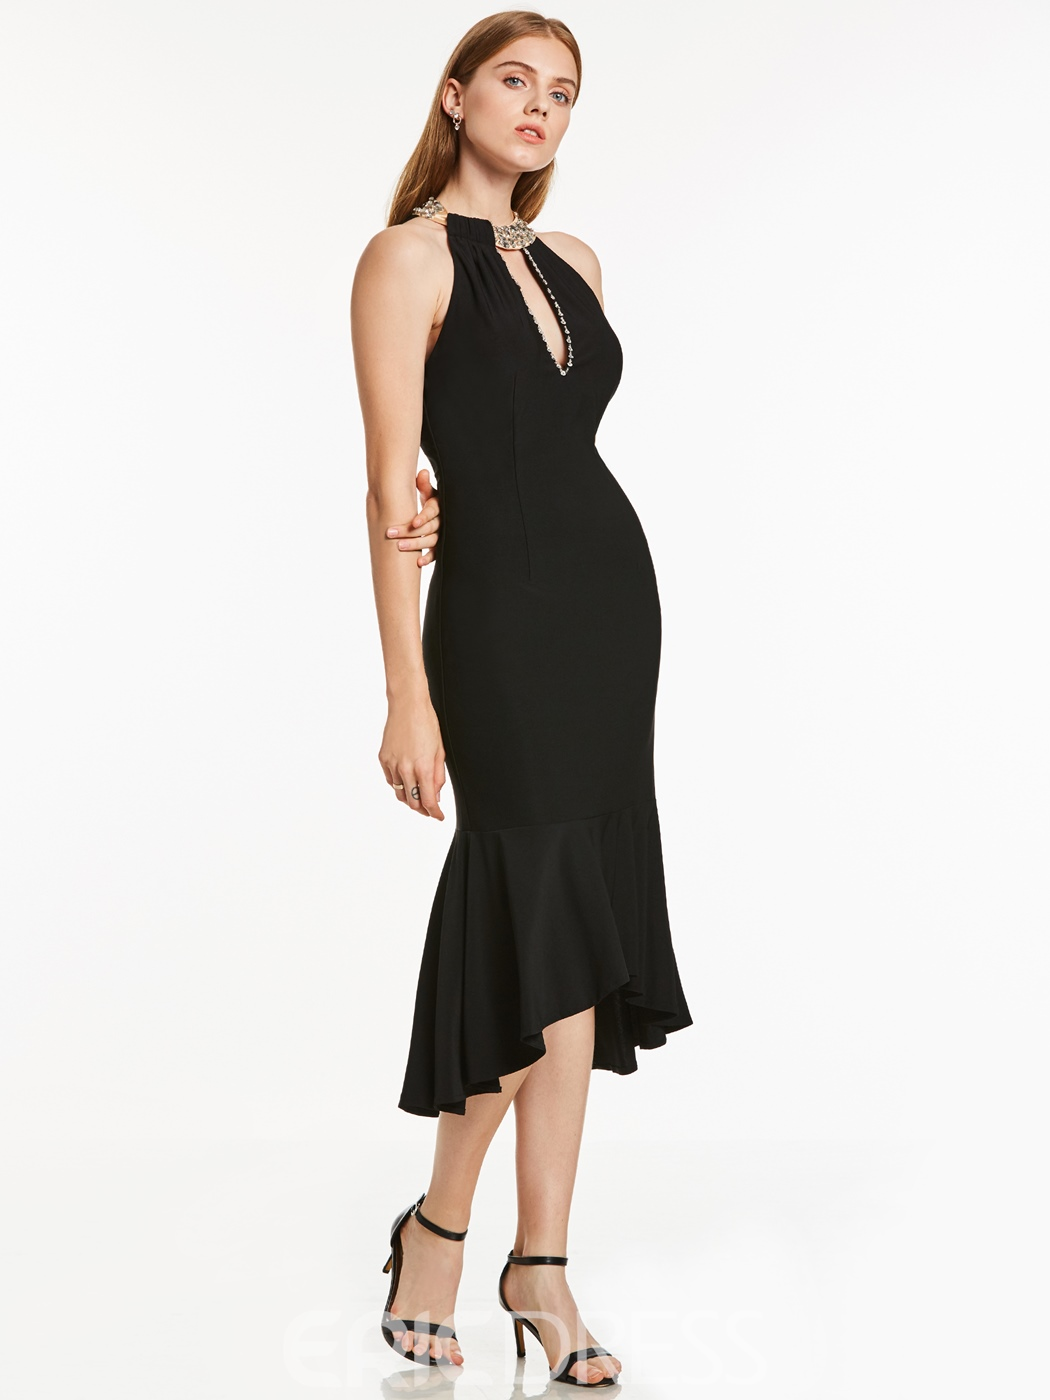 Ericdress Halter Neck Backless Mermaid Cocktail Dress